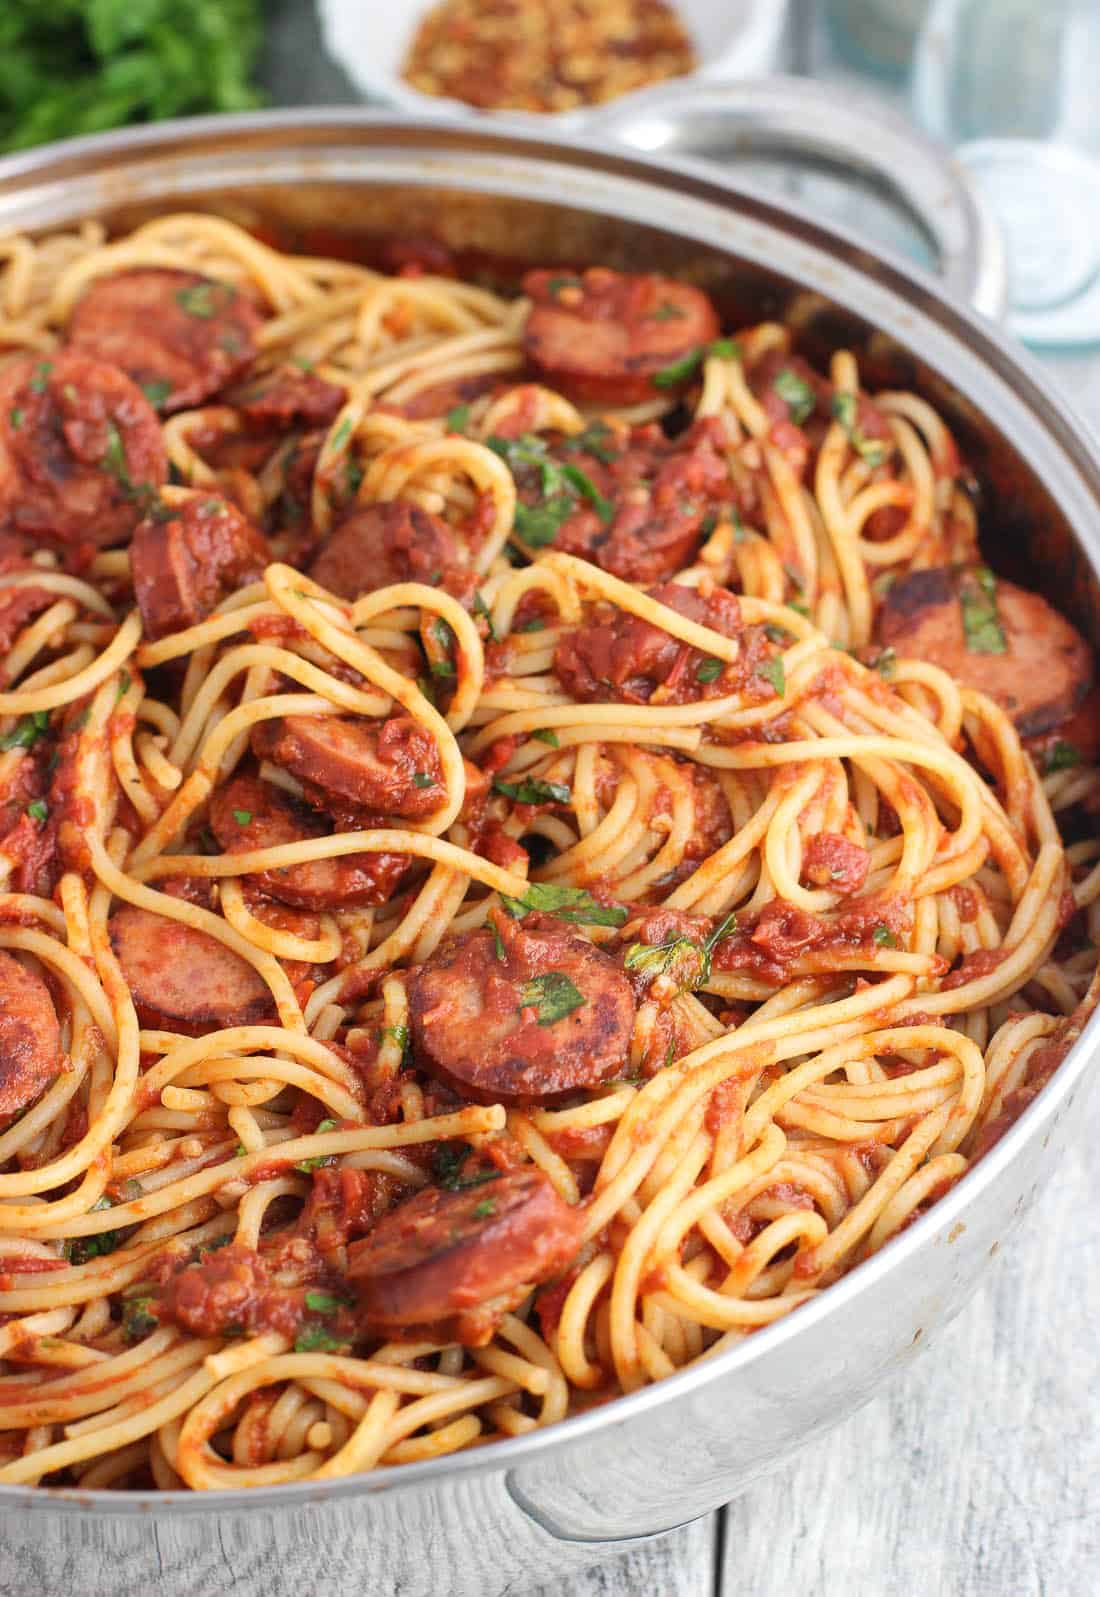 Smoked sausage fra diavolo is a pasta dish with a homemade tomato sauce with a kick! This spicy favorite is served over spaghetti, smoked sausage, and fresh herbs for a new twist on a classic pasta.